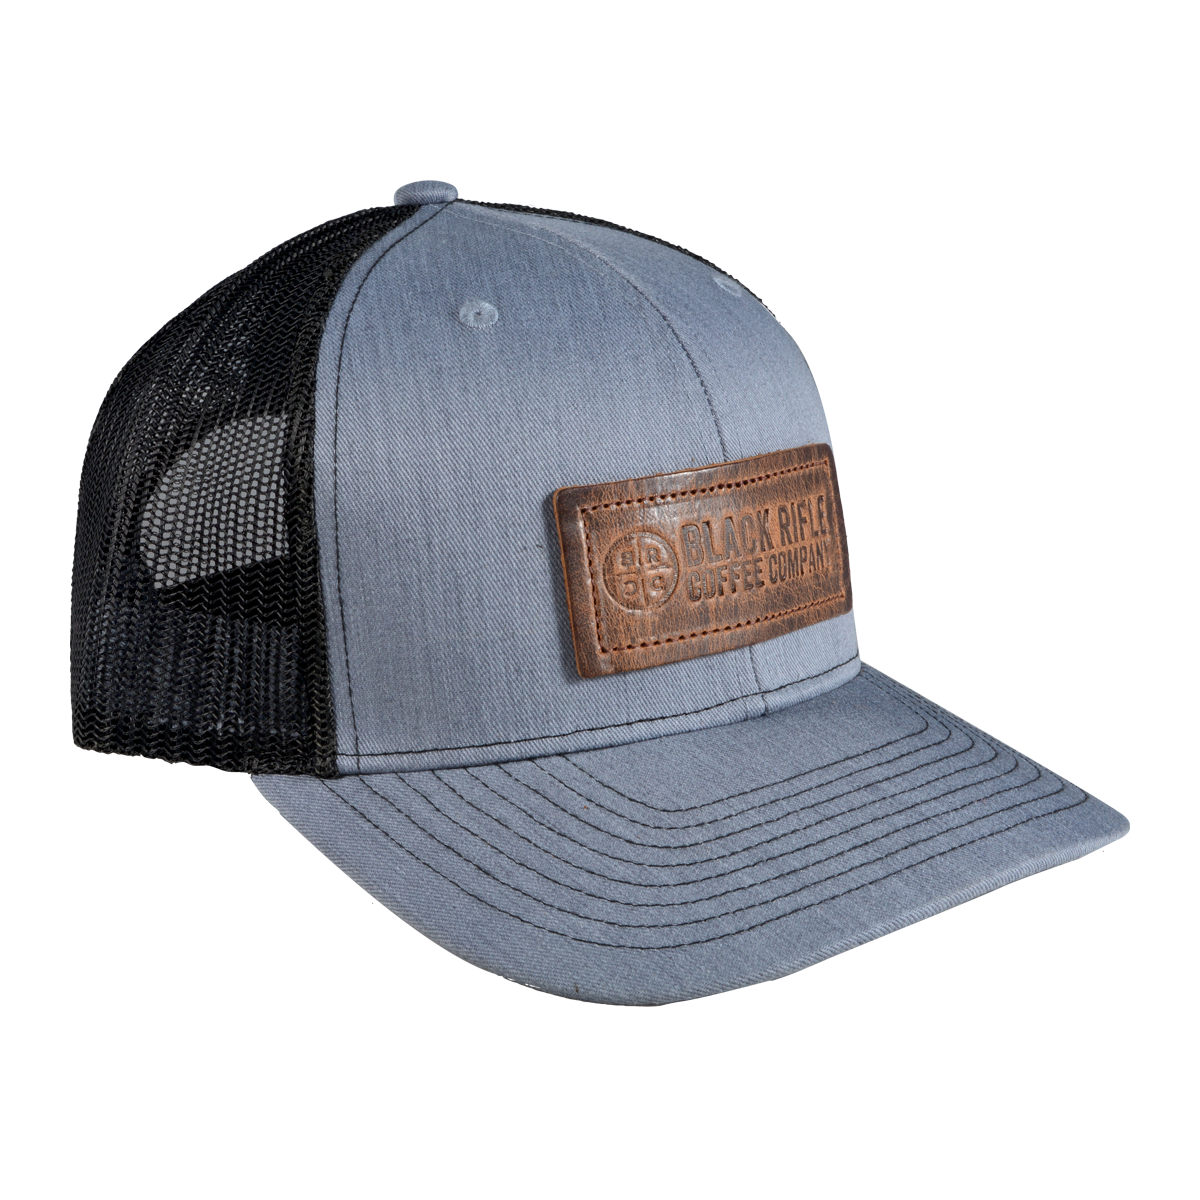 One Legging it Around got Viability? Leather Light Brown Patch Engraved Trucker Hat